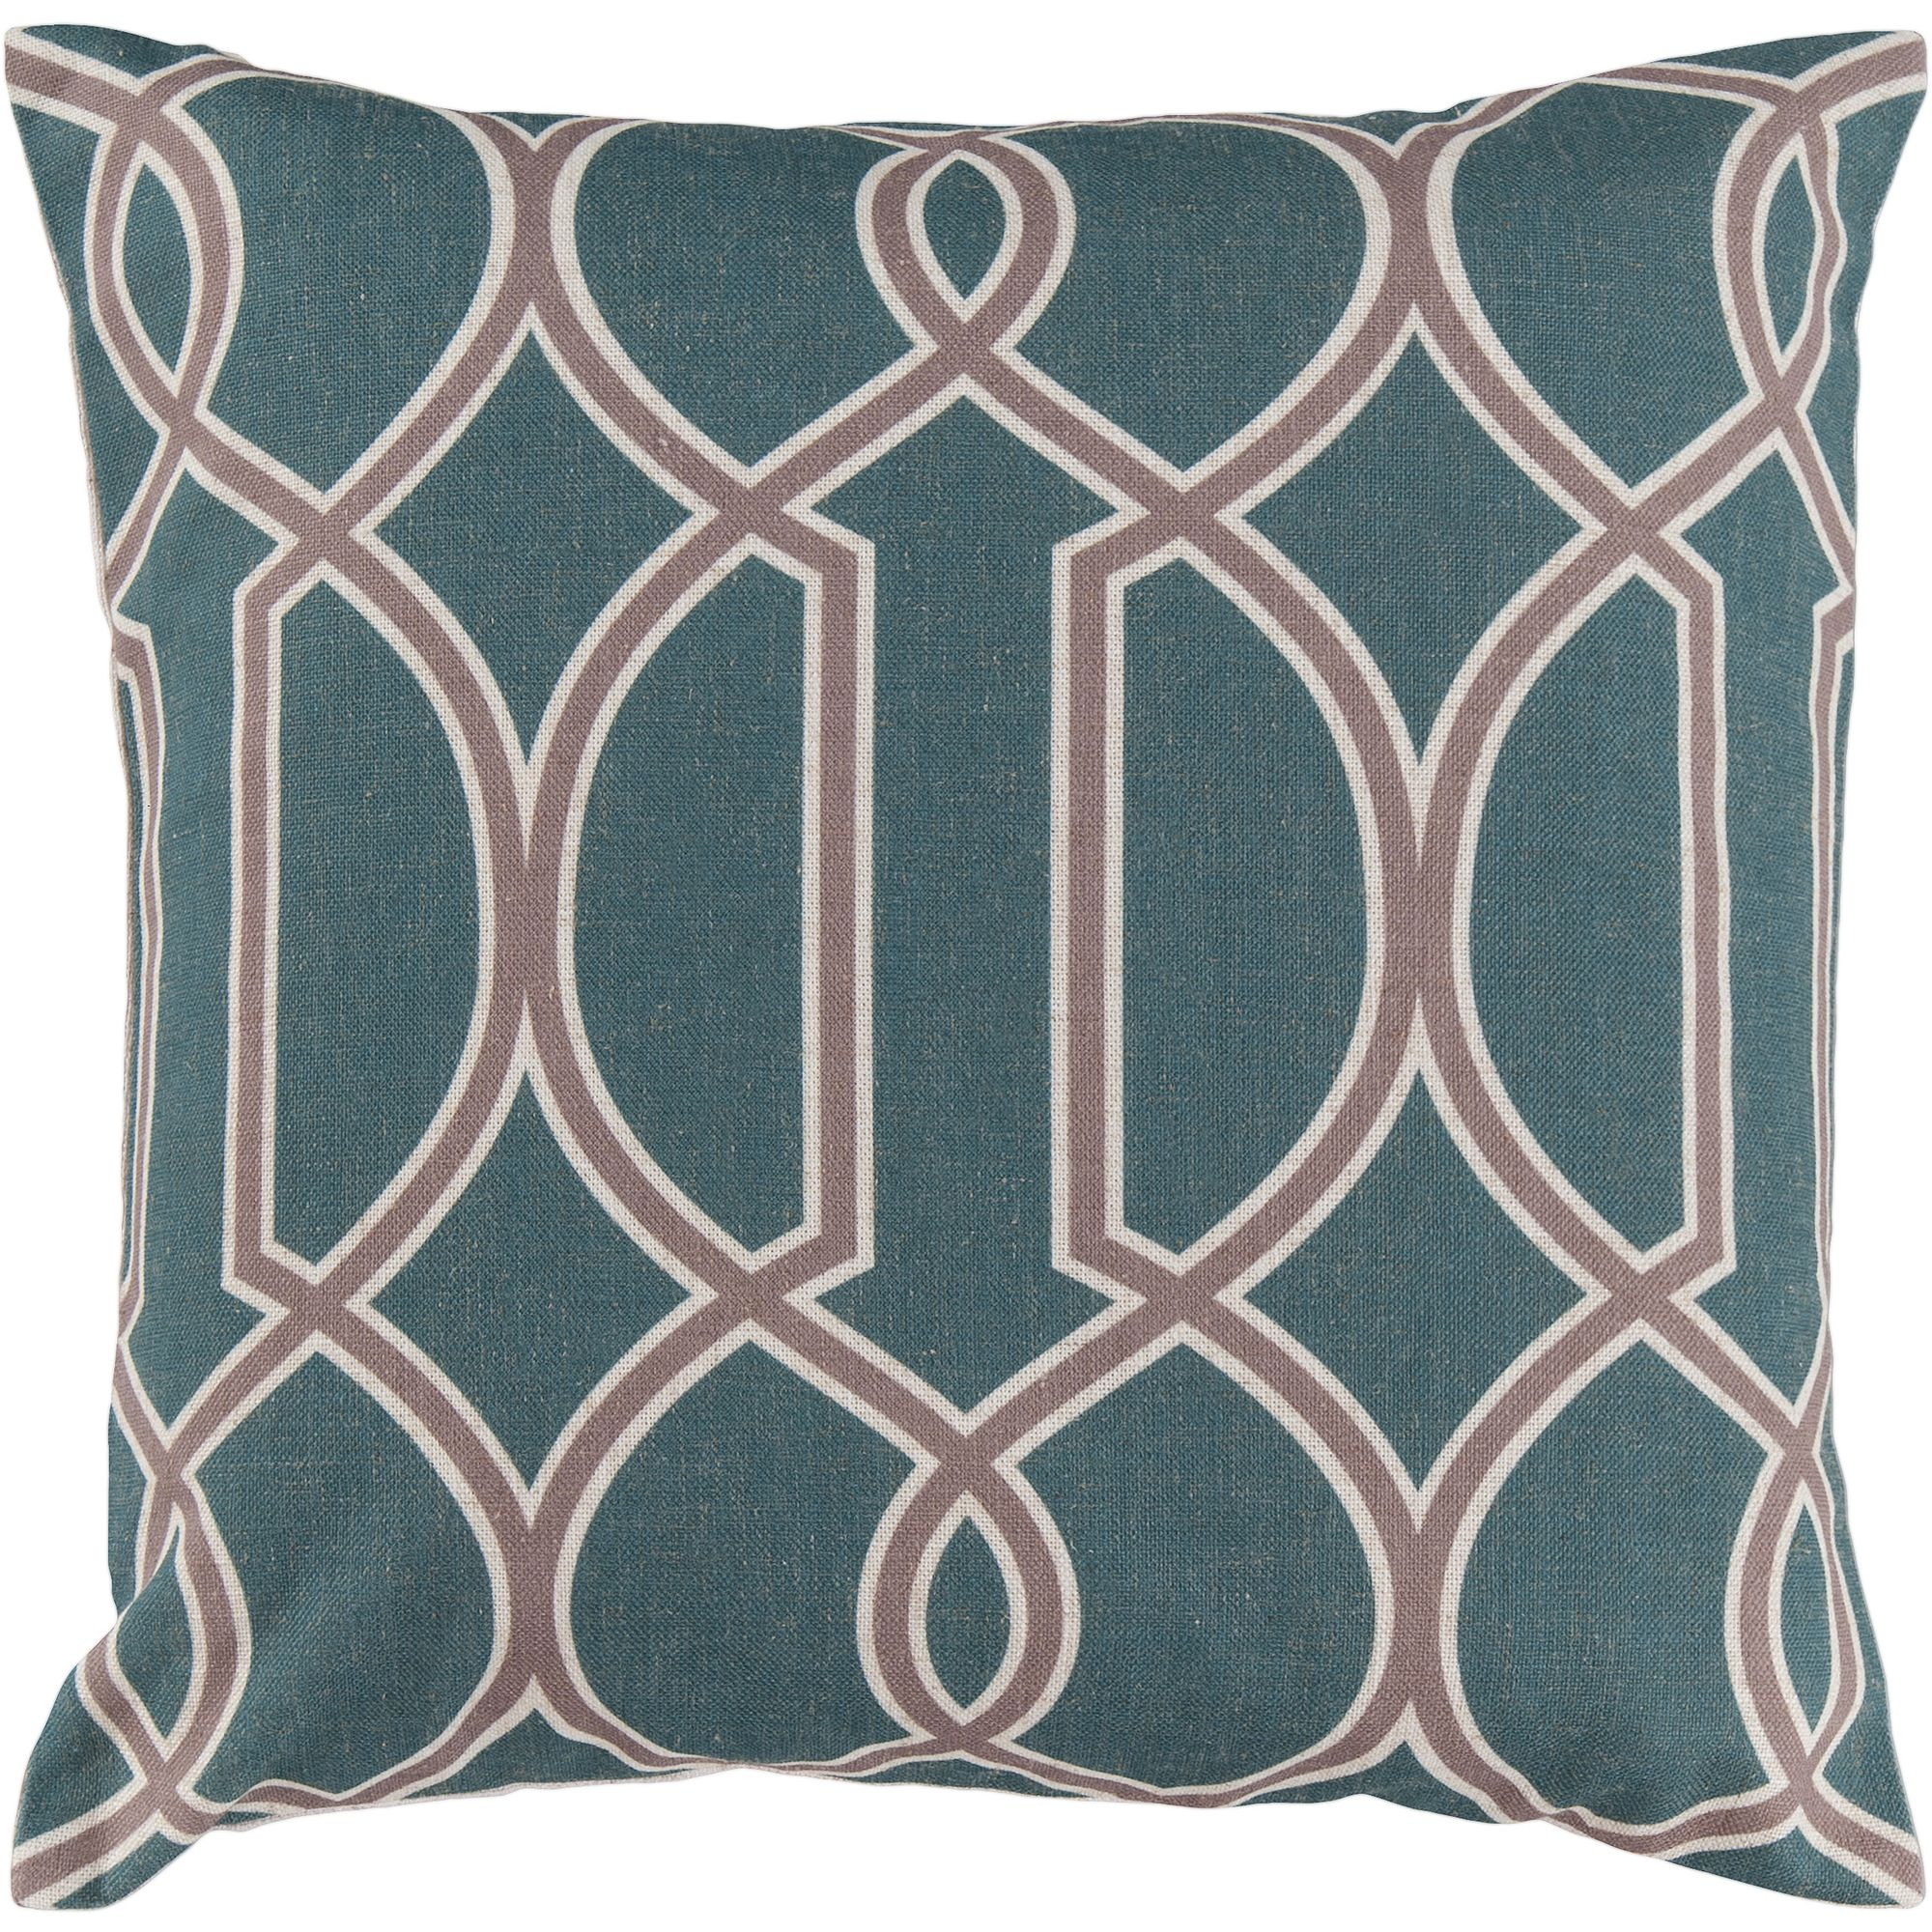 Libby Langdon Bentley Hand Crafted Geometric Trellis Decorative Pillow with Poly Filler, Teal